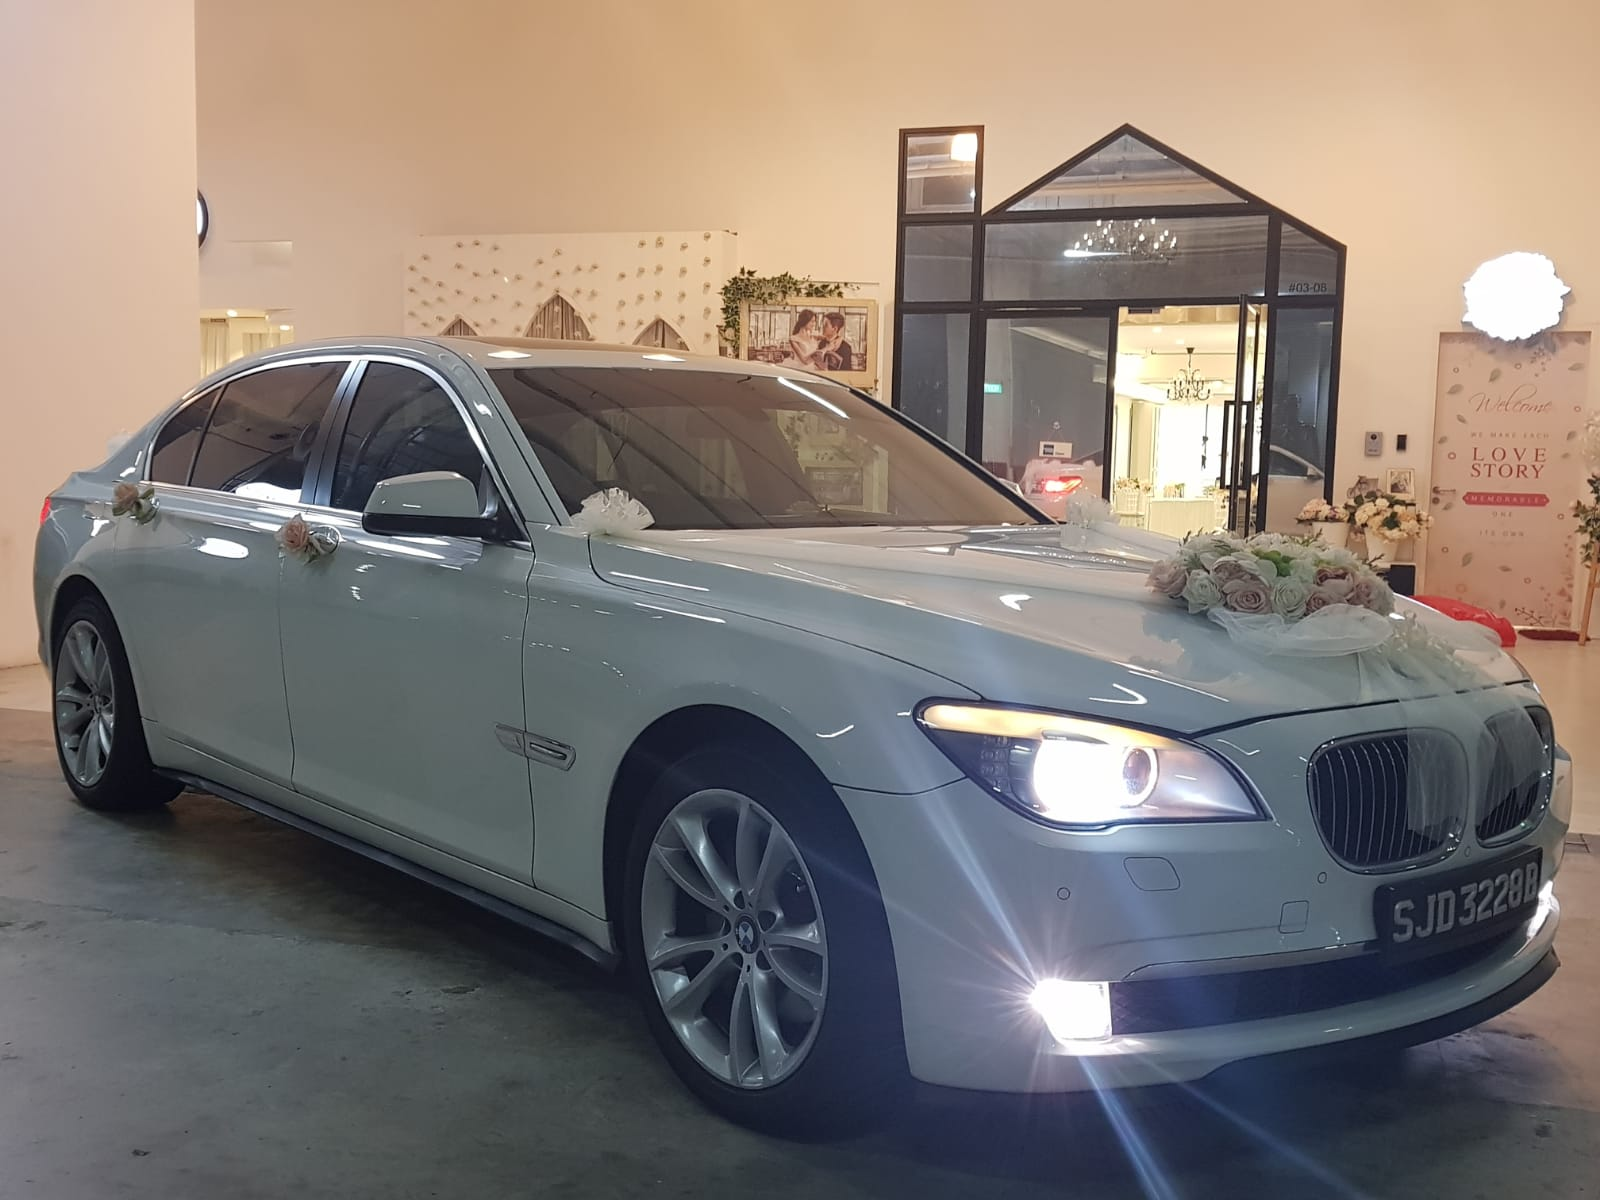 BMW 7 series wedding car